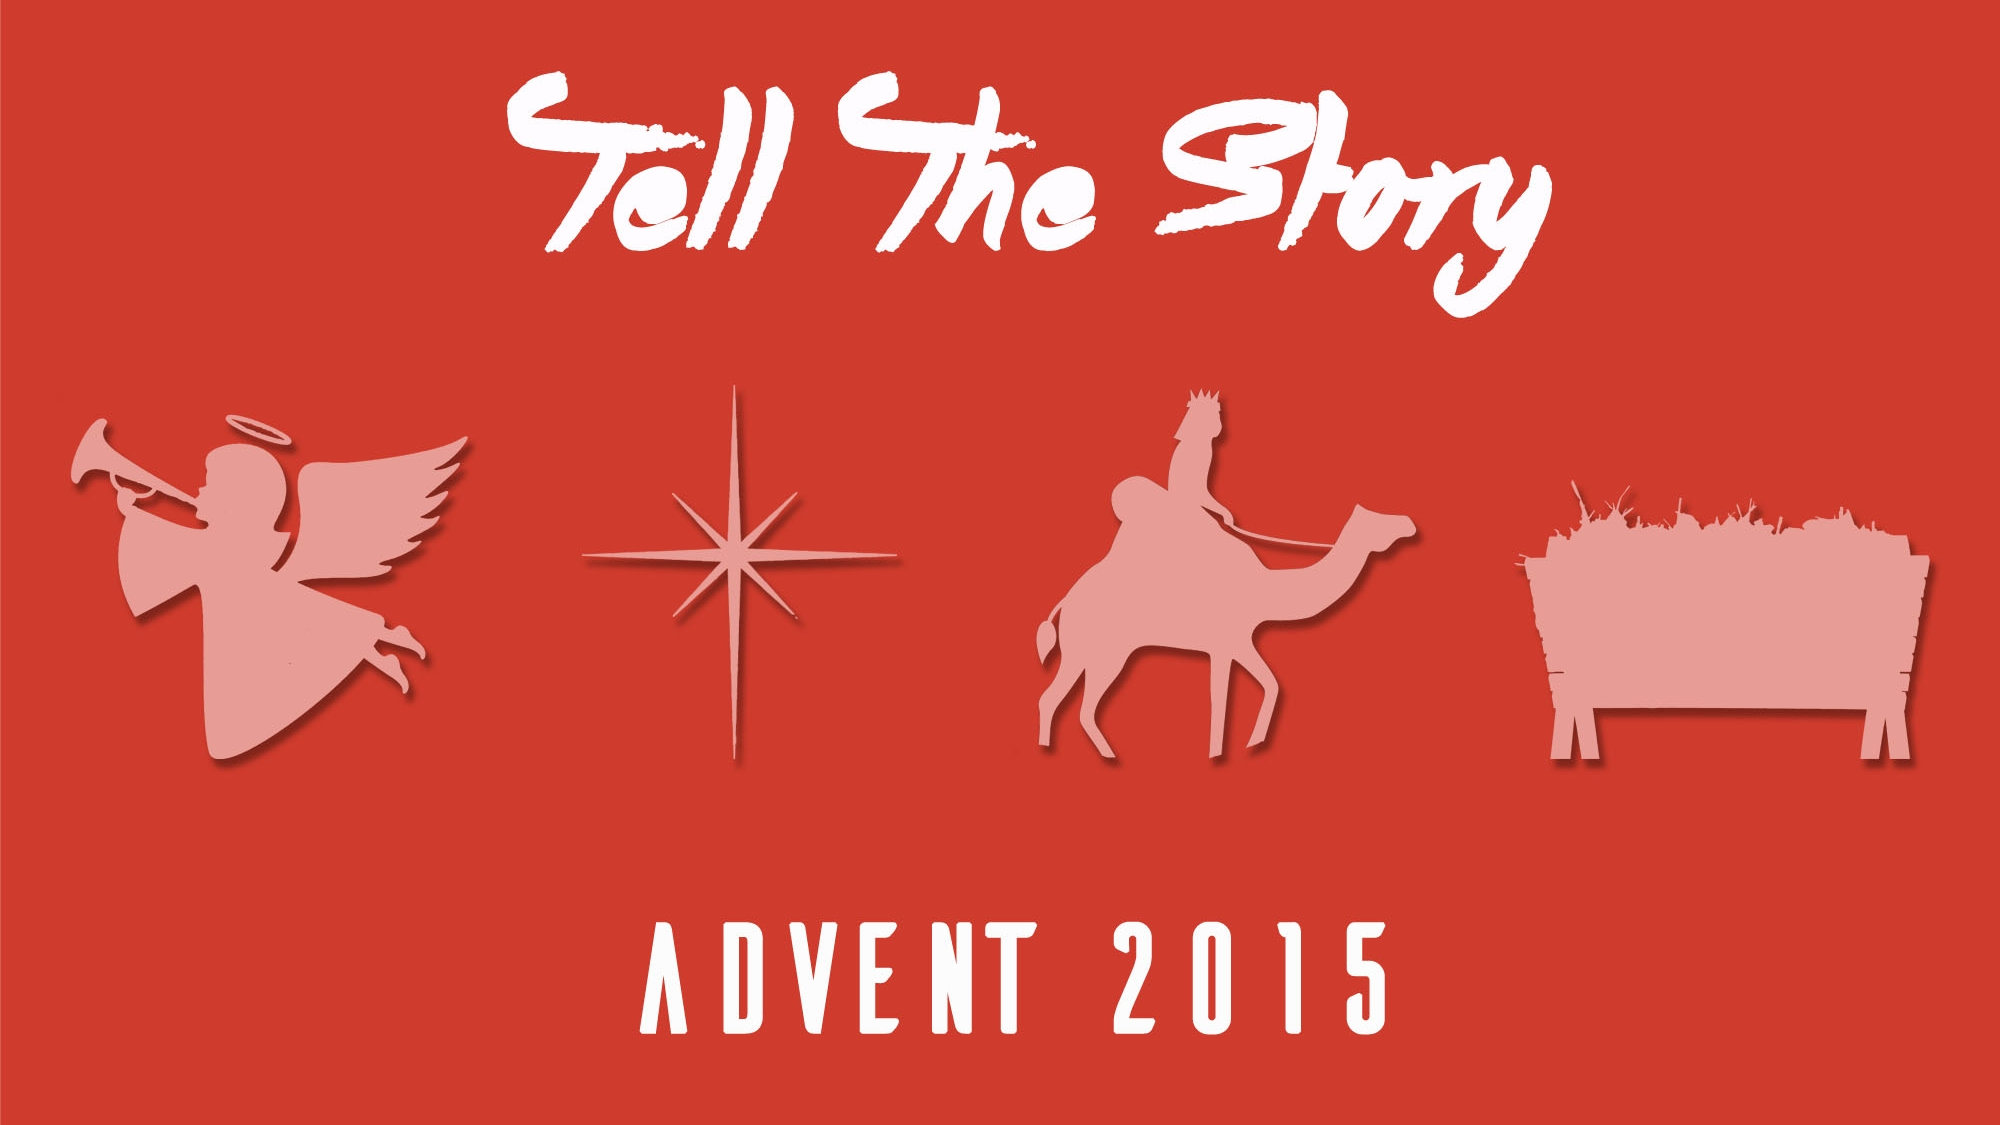 Tell The Story: Advent 2015